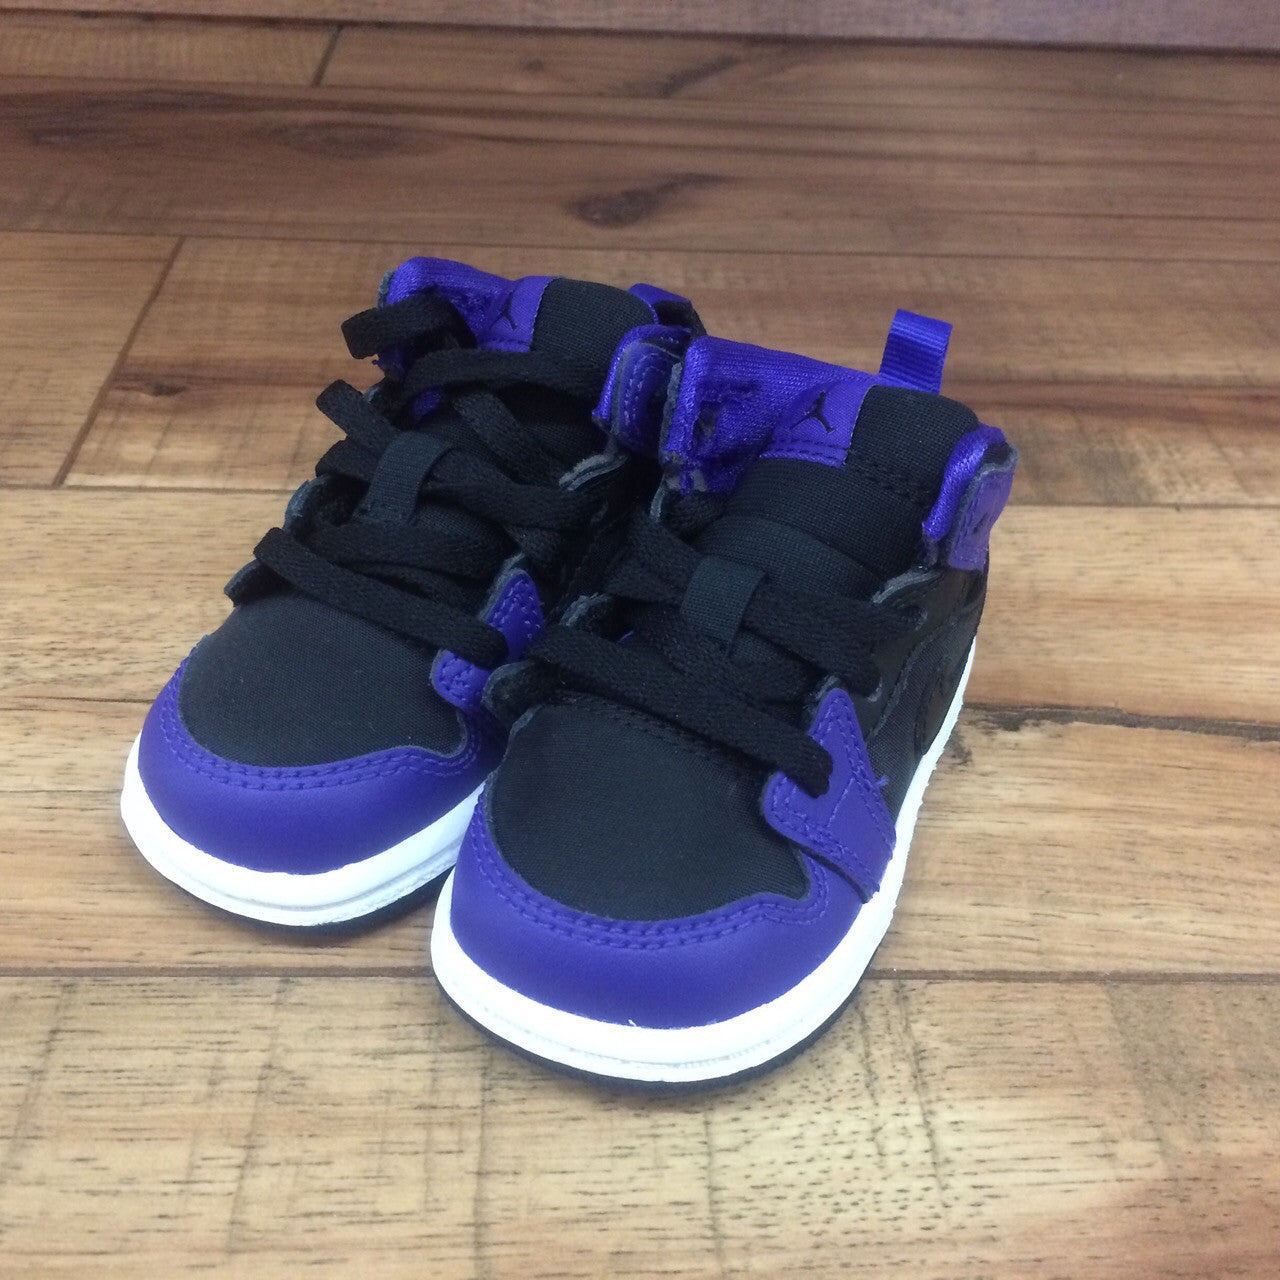 f7ea55b99dccd1 NIKE AIR BABY JORDAN 1 (Purple Black ps) 640735 029 – Superbored Clothing  Ltd.